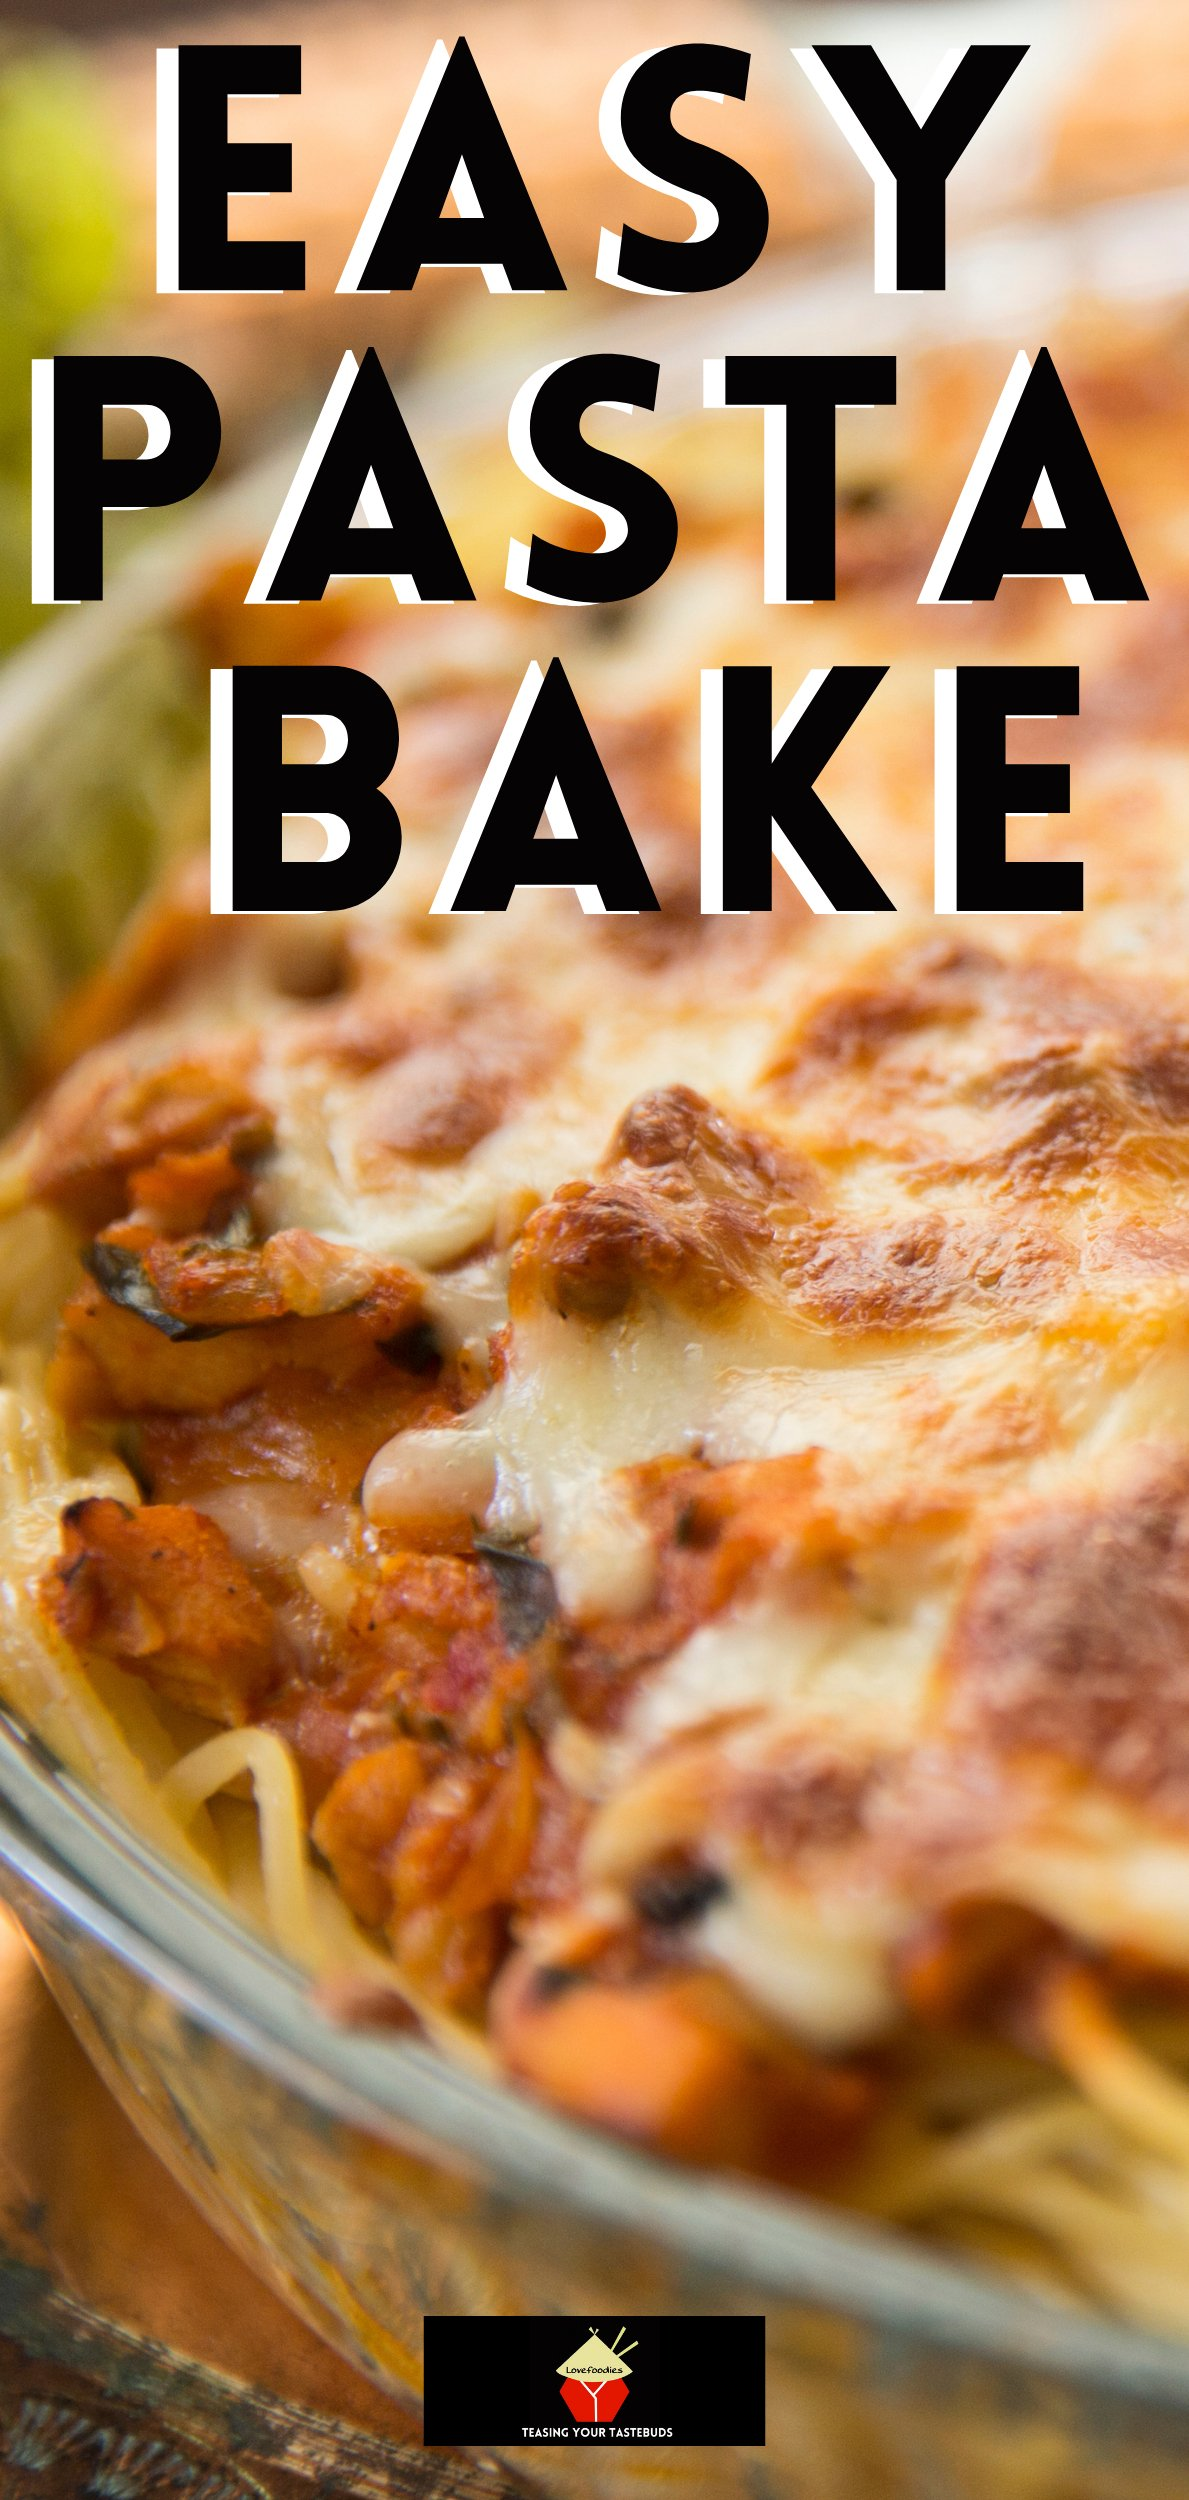 Easy Pasta Bake. A quick and easy dinner, loaded with cheese, ground beef, pasta and baked in a delicious tomato sauce.